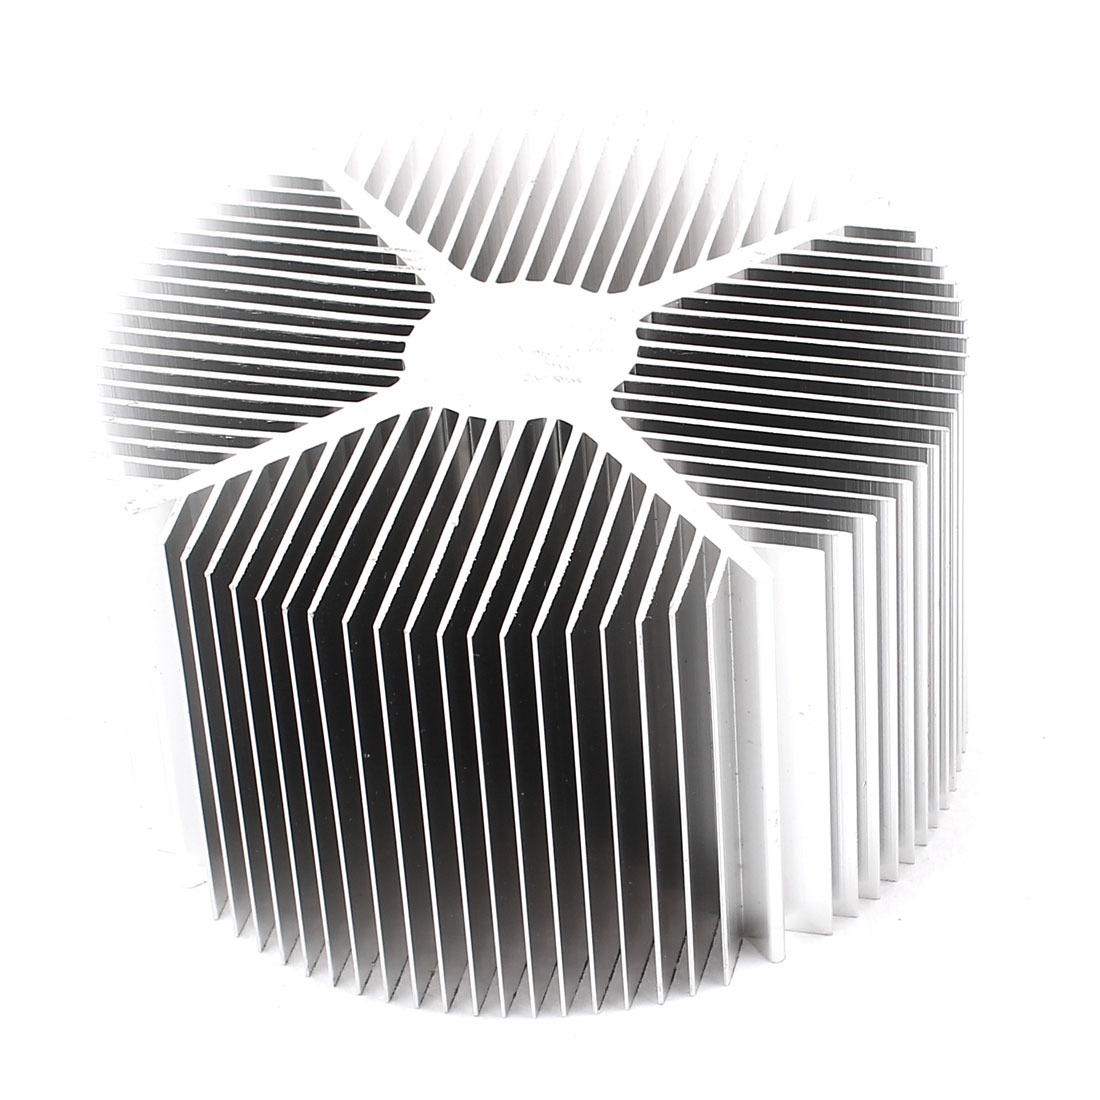 90mm x 50mm Cylinder 10W-20W High Power LED Heatsink Aluminium Cooling Fin